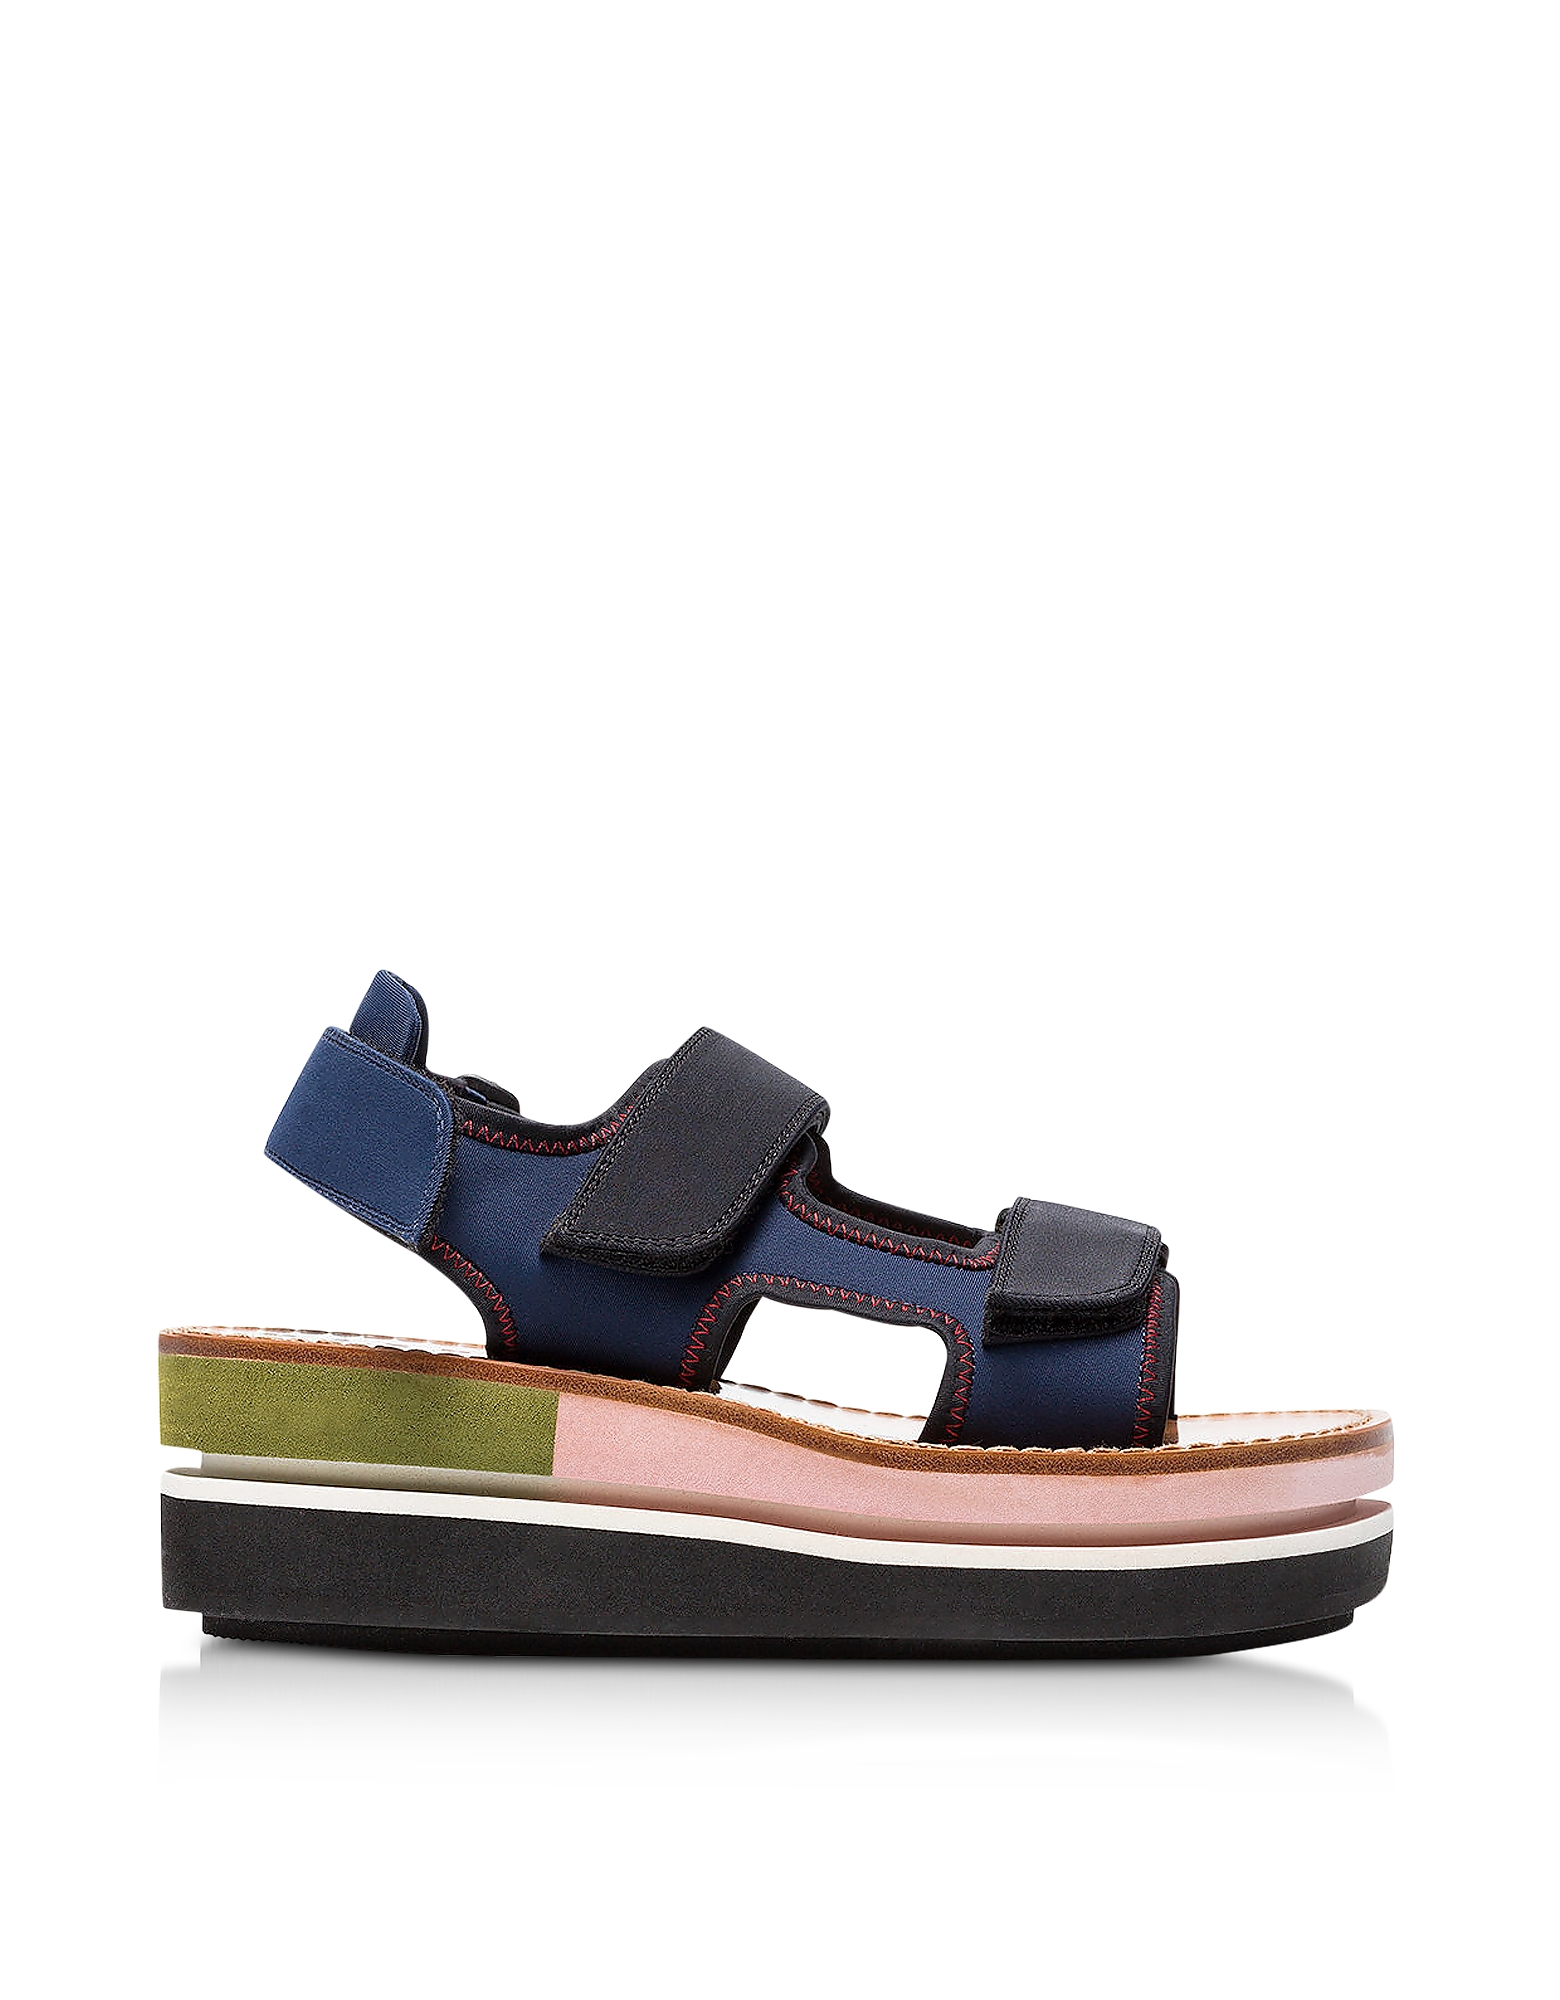 Marni Shoes, Eclipse Blue Neoprene Wedge Sandals